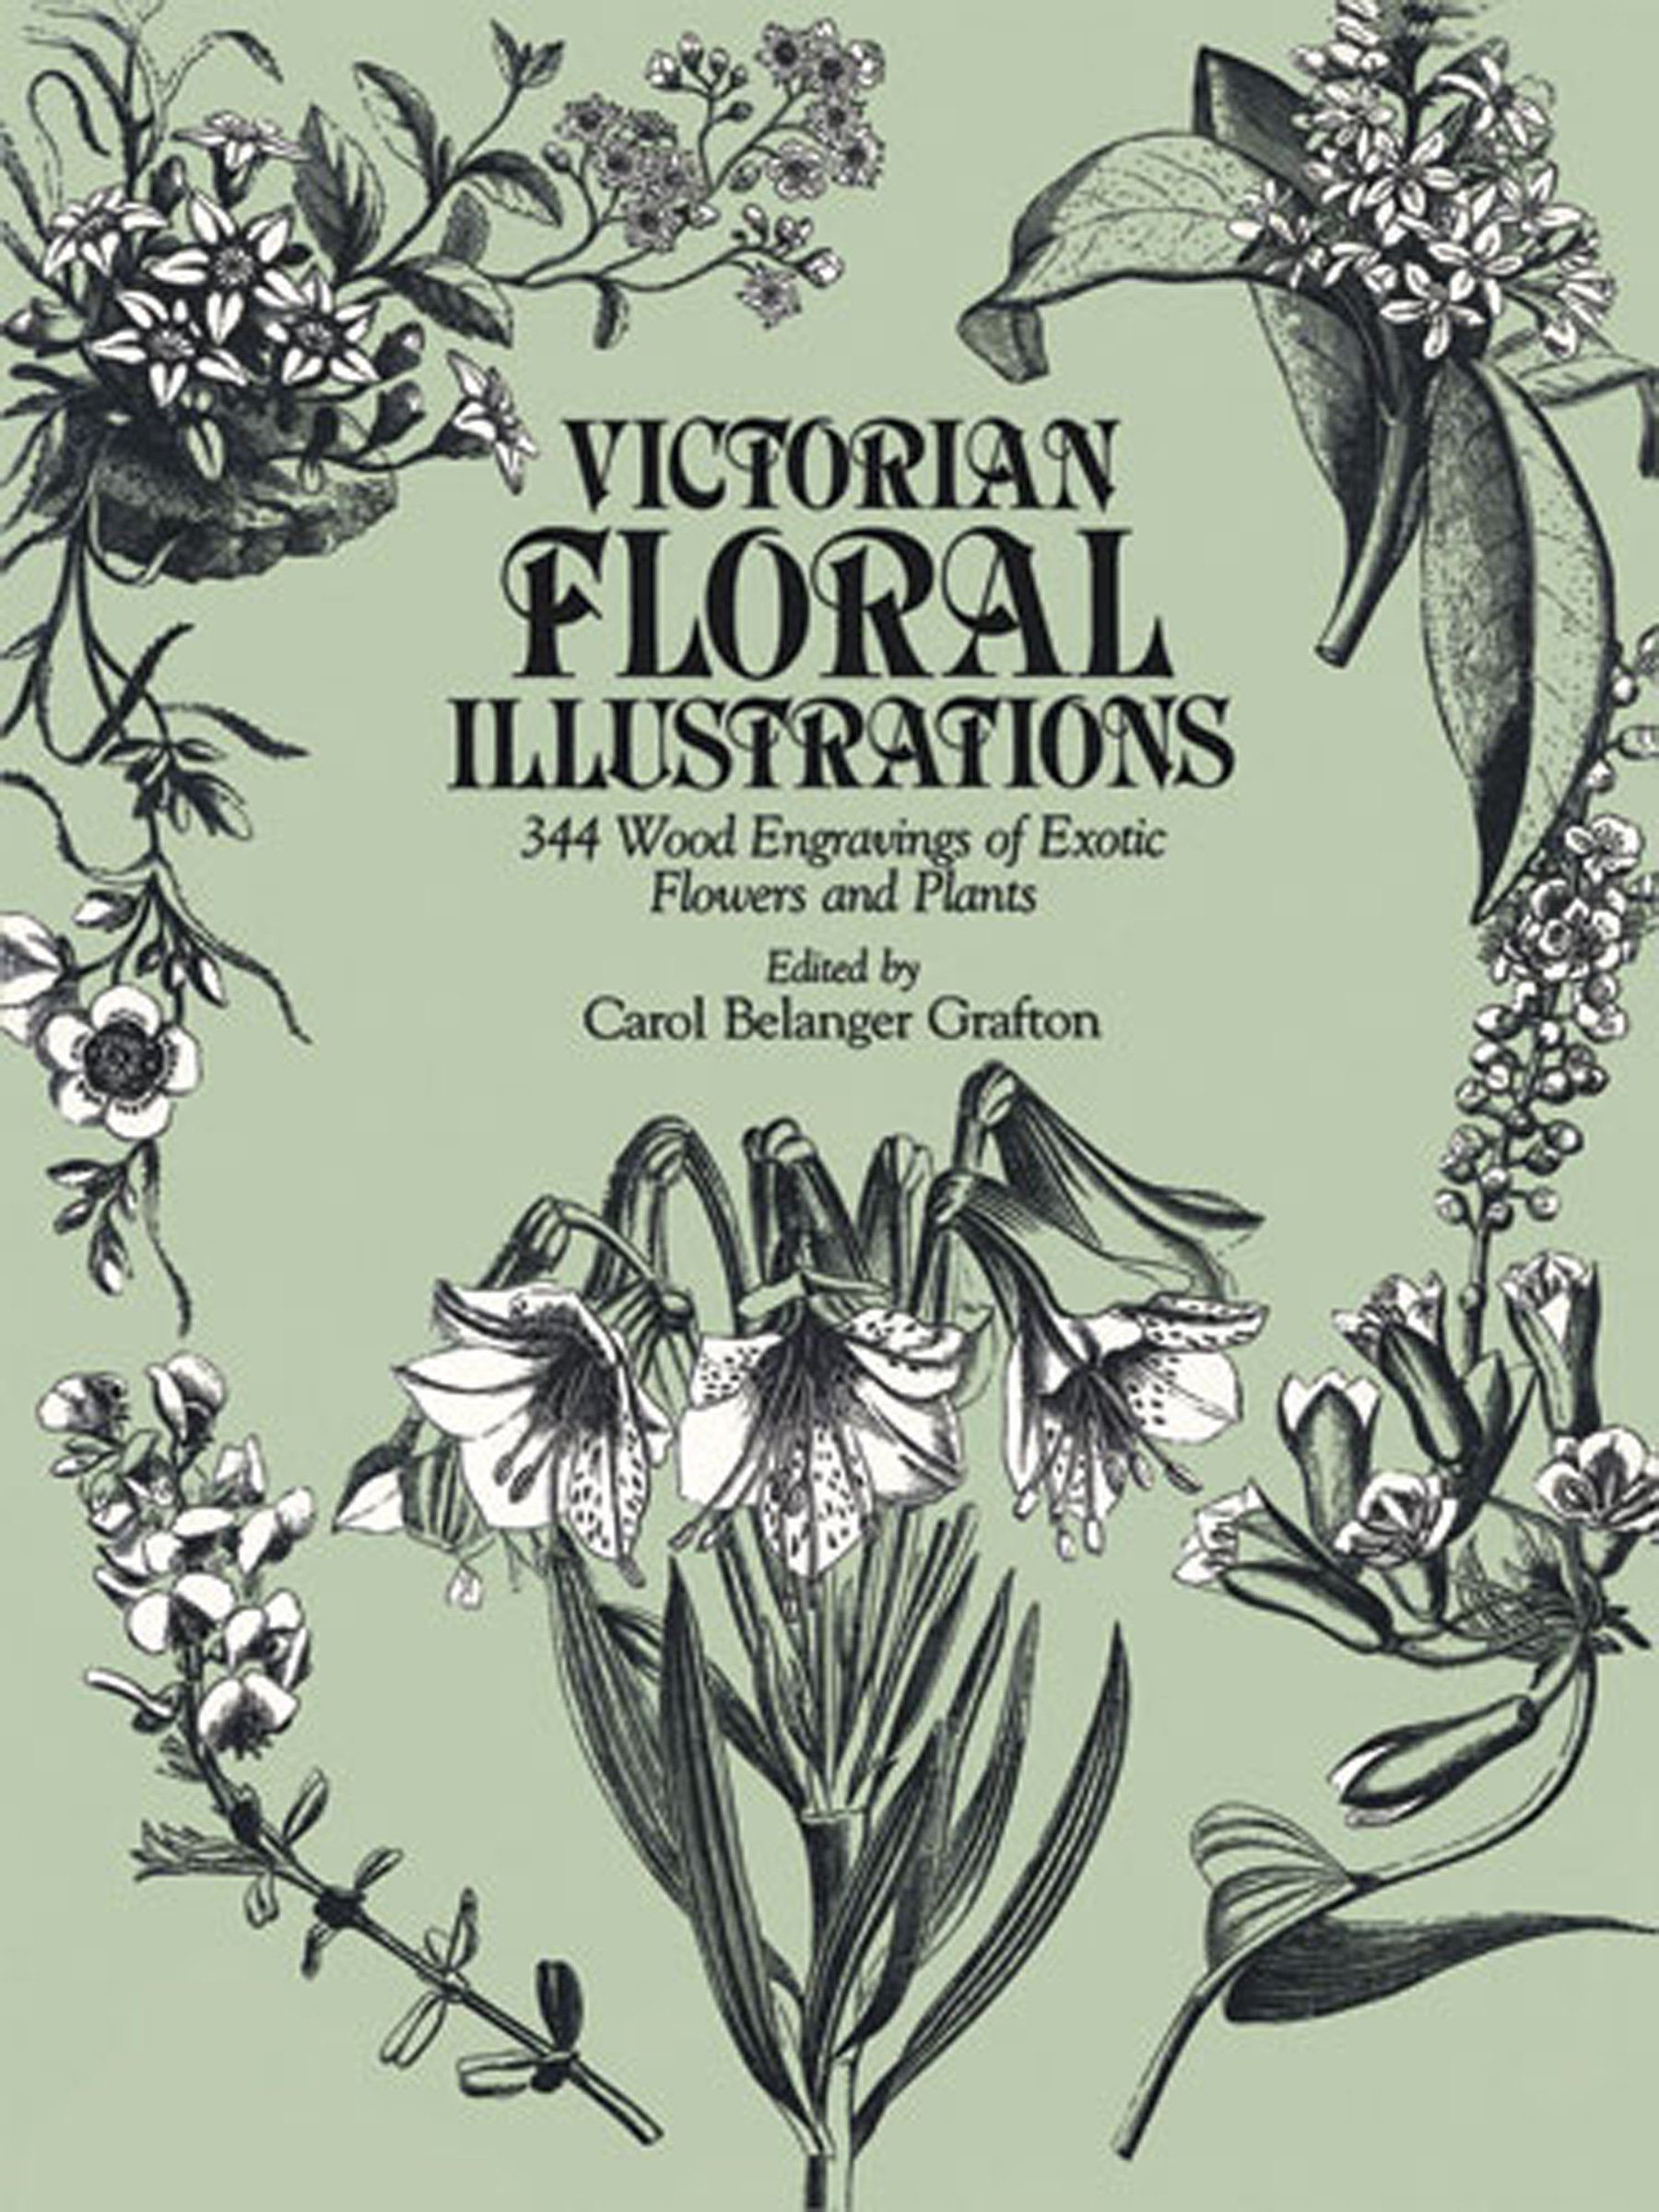 Victorian Floral Illustrations: 344 Wood Engravings of Exotic Flowers and Plants (Dover Pictorial Archives)